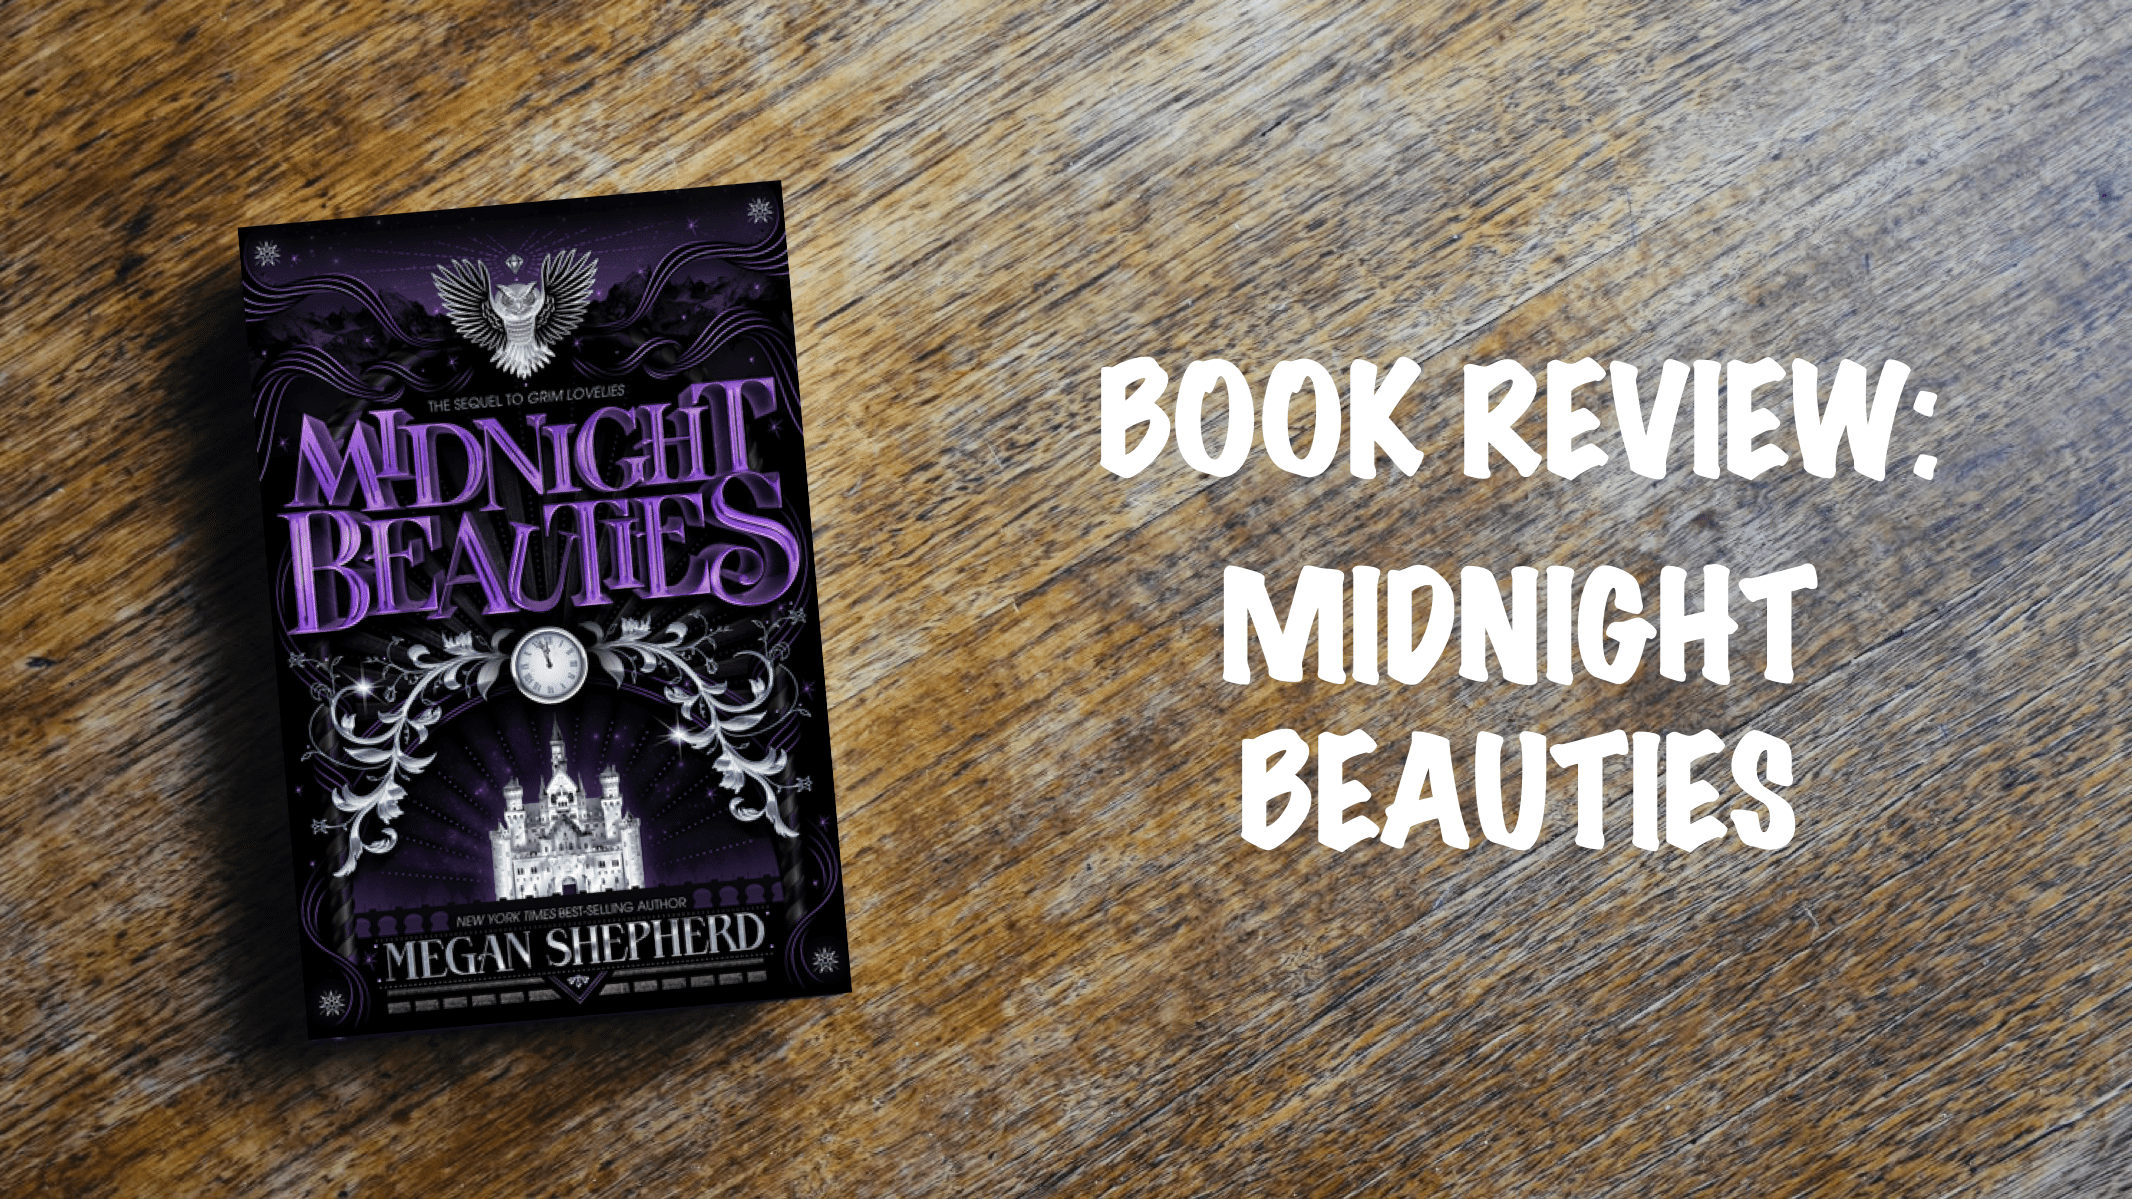 Book review banner: Midnight Beauties